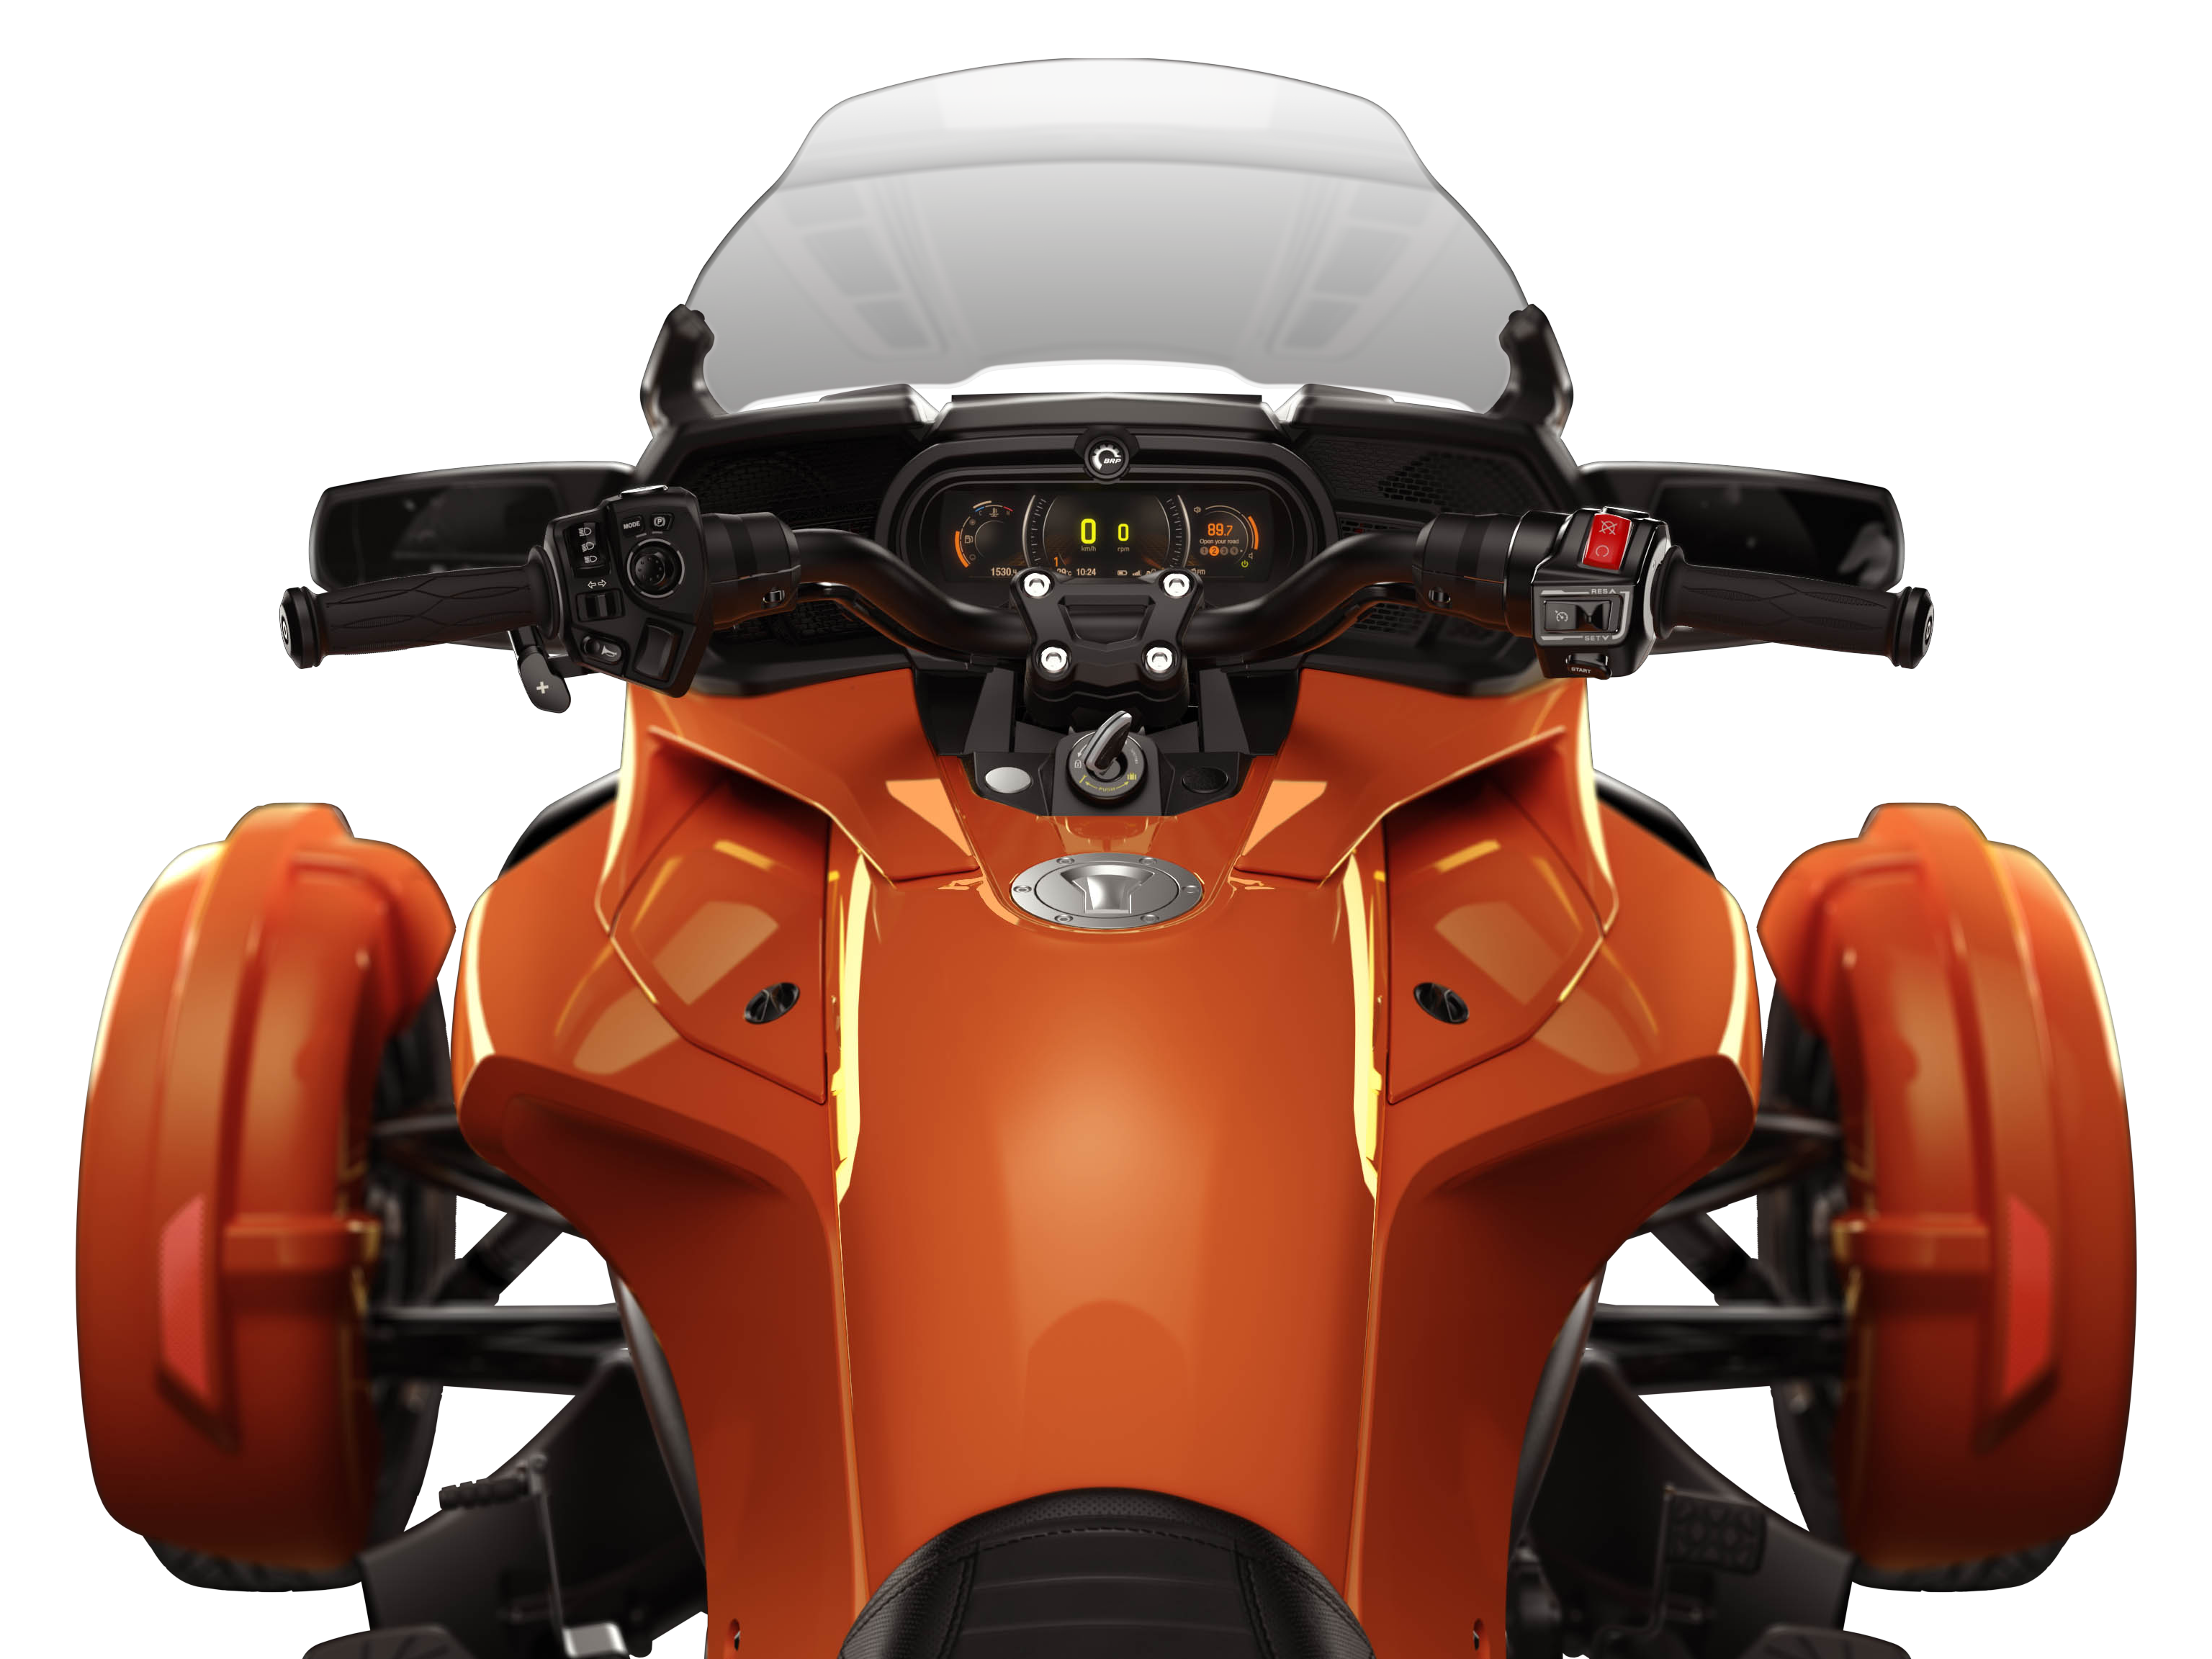 """The instrumentation and BRP Connect display of a Can-Am Spyder vehicle from driver's view	"""